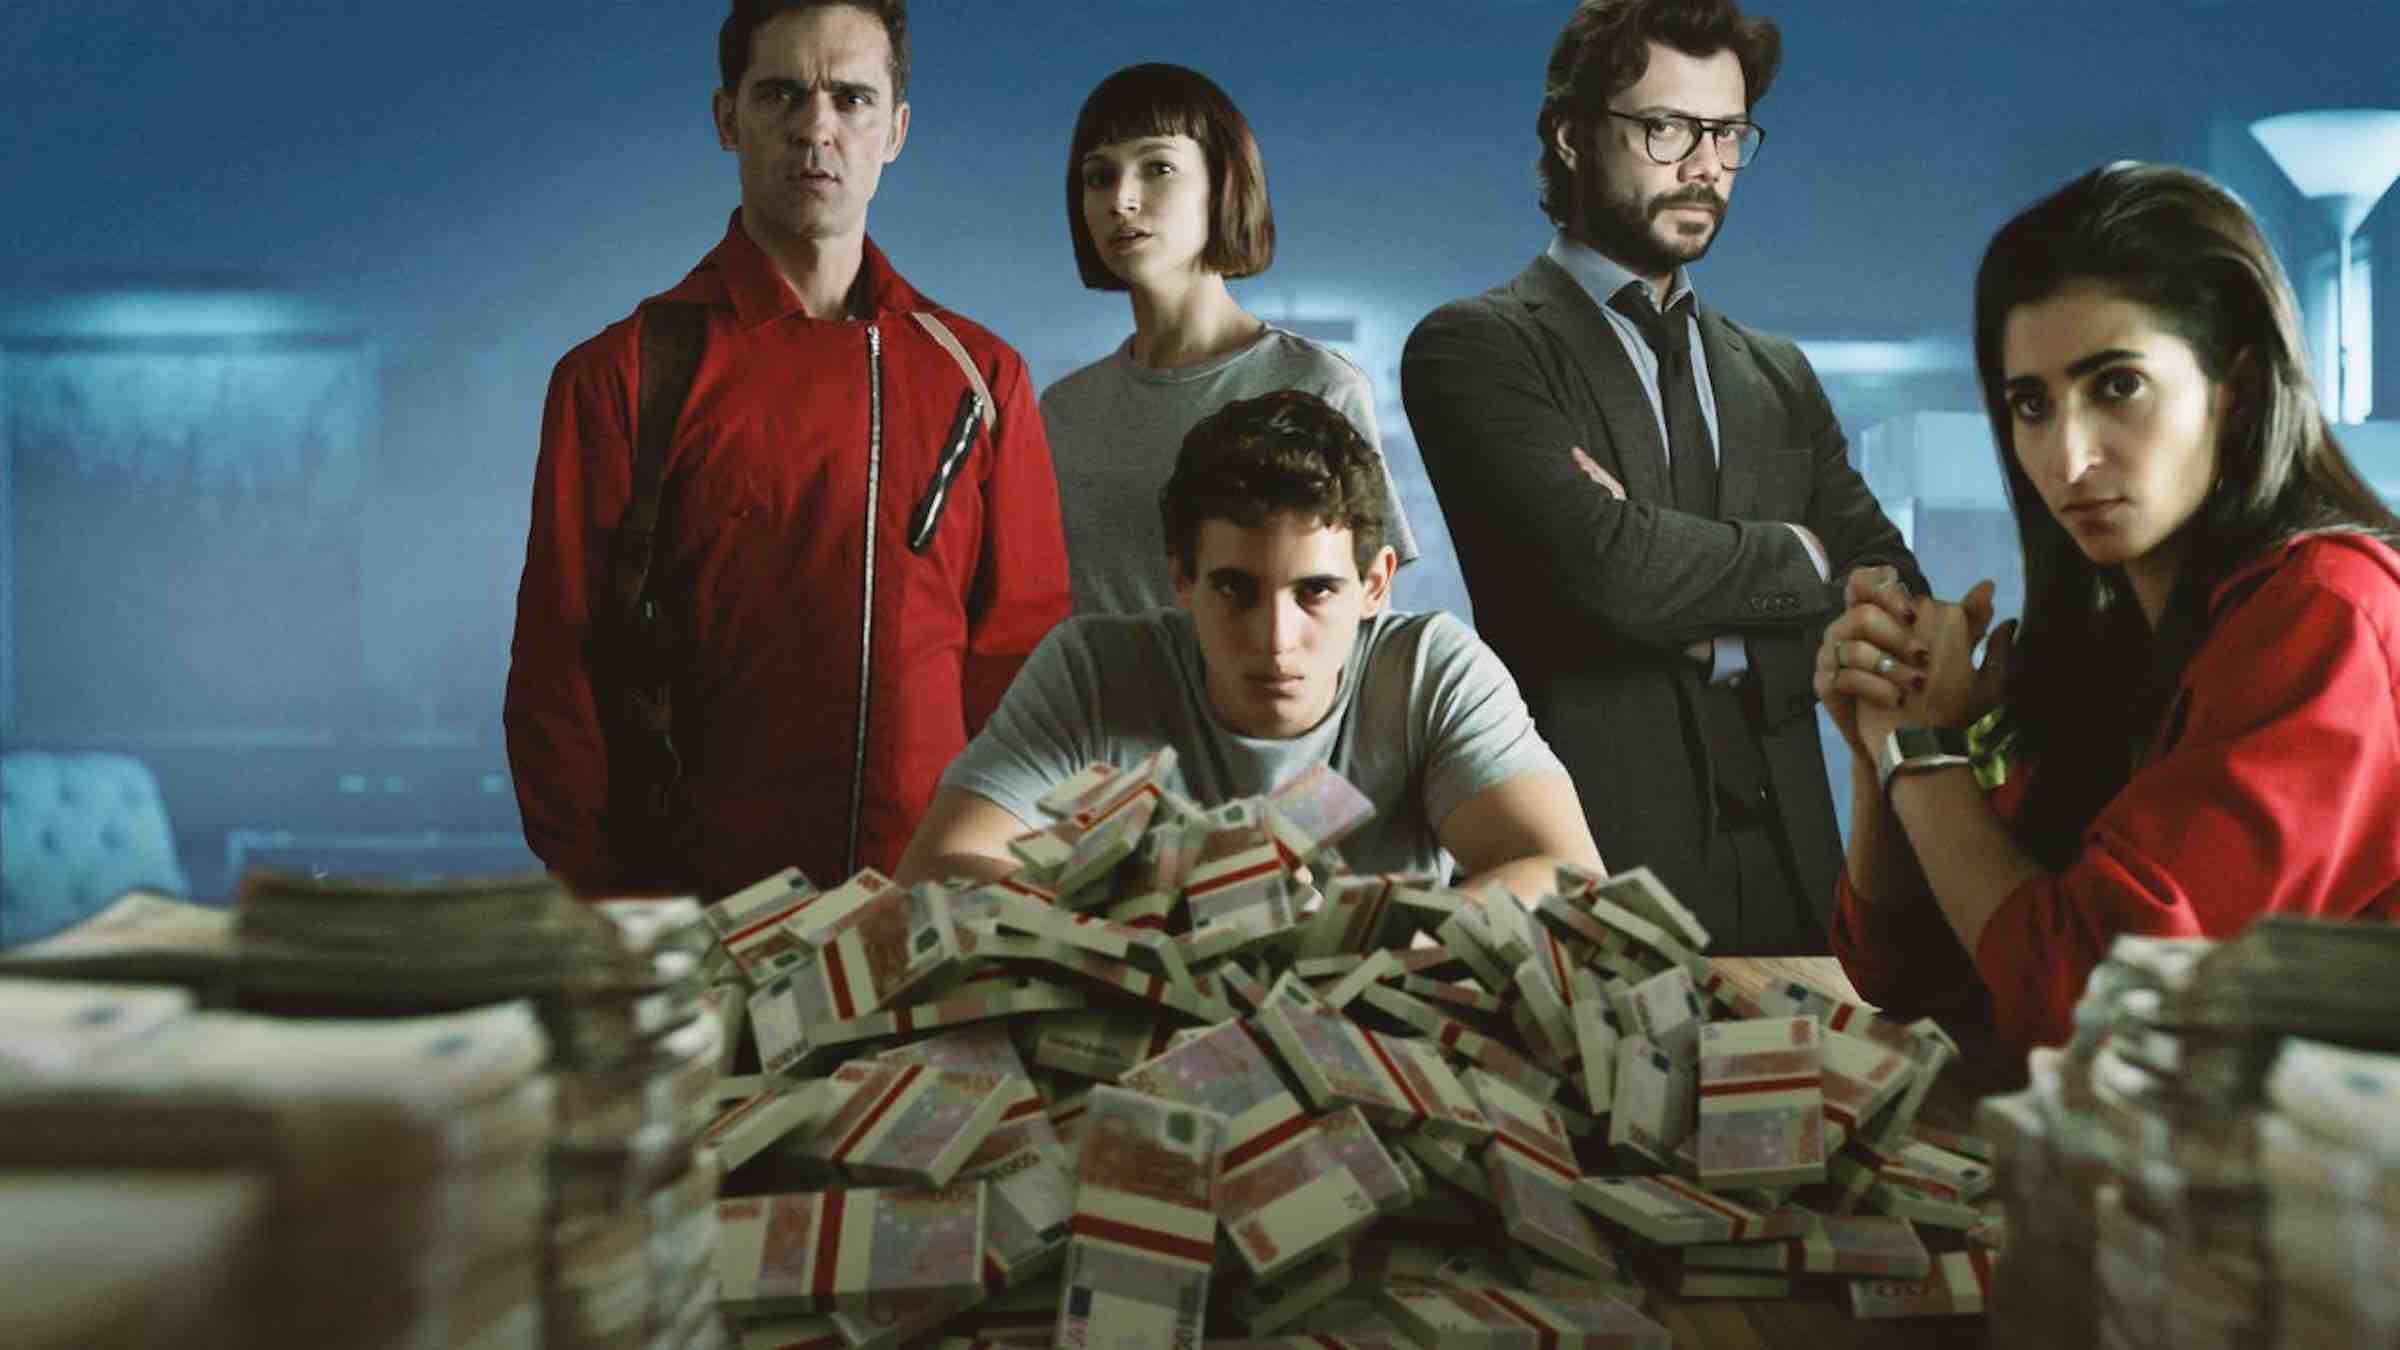 Should you listen to Tokyo – or Berlin? Get through the holiday blues with some inspirational quotes from Netflix's breakout hit 'Money Heist'.